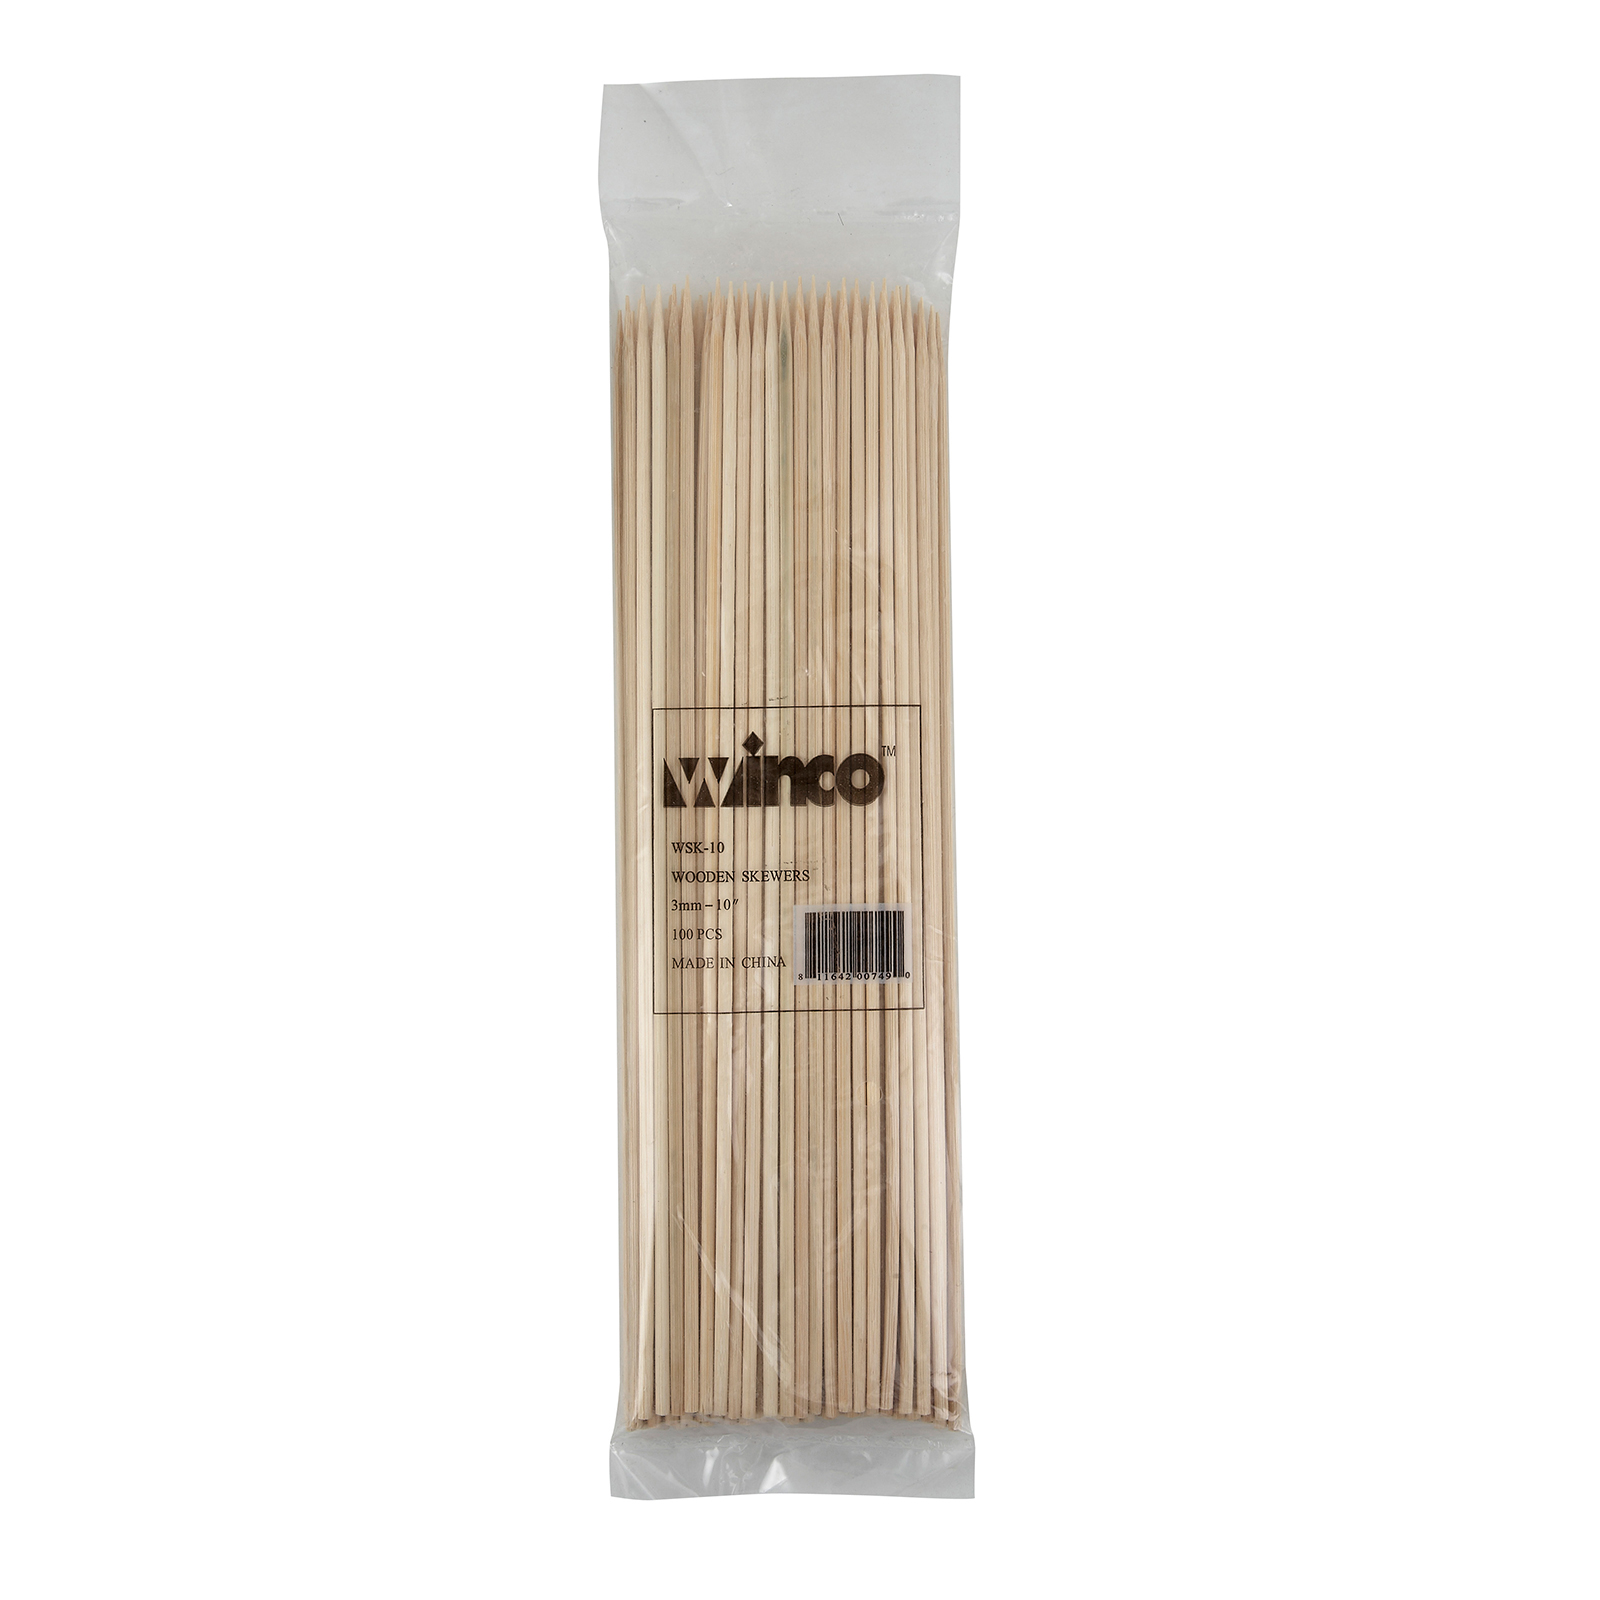 Winco WSK-10 skewers, wood